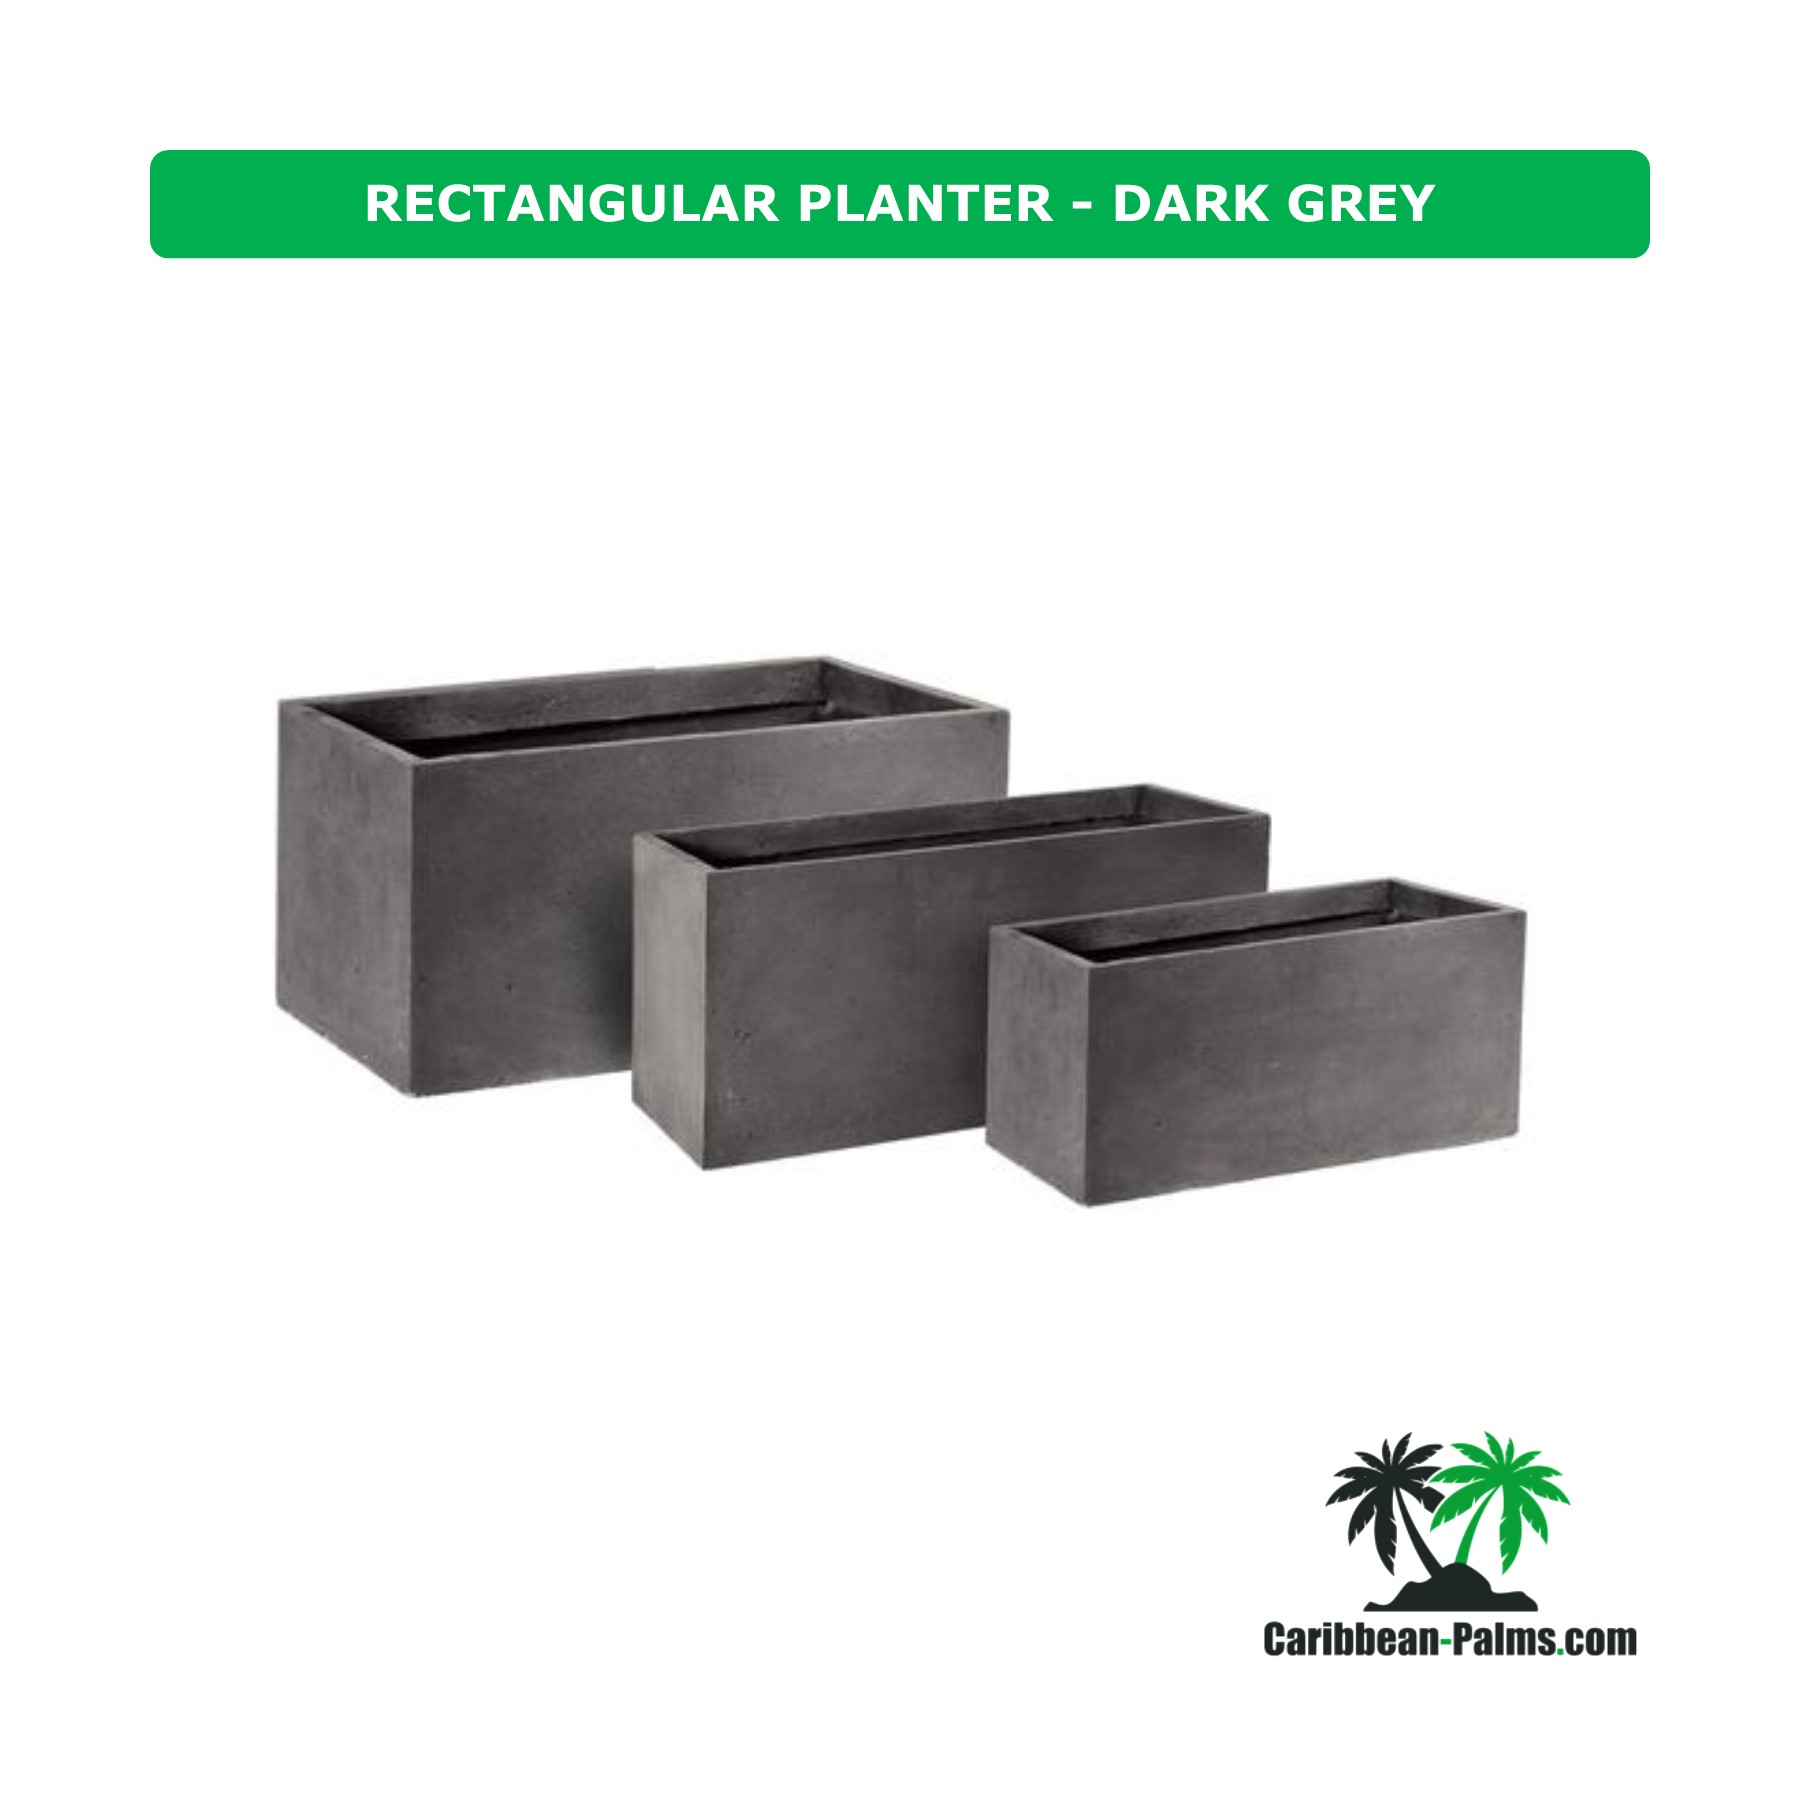 RECTANGULAR PLANTER DARK GREY